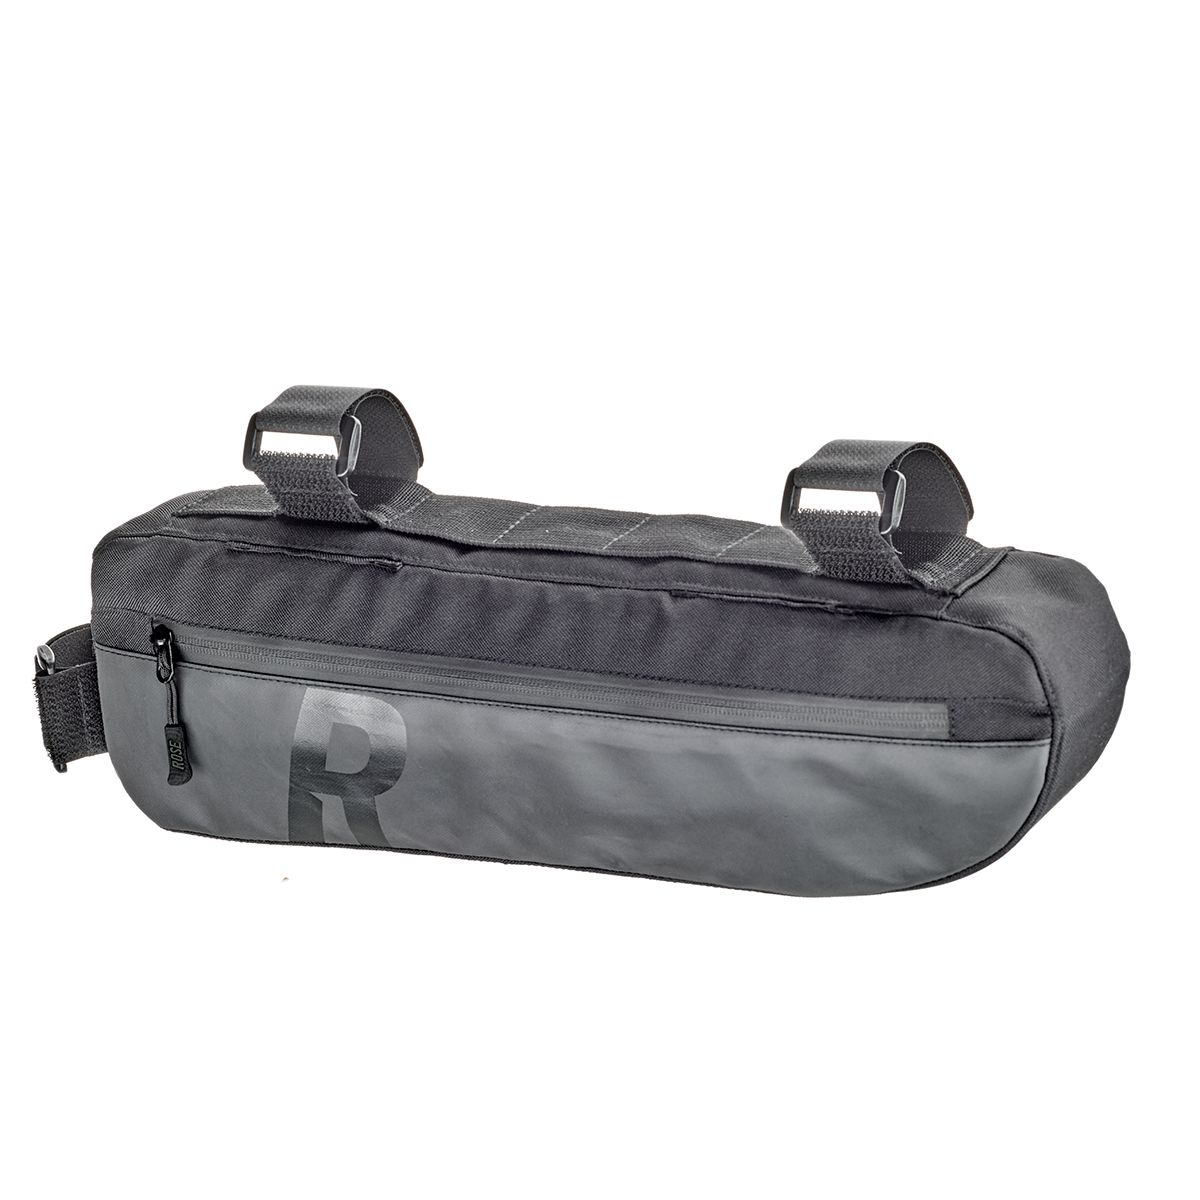 ROSE TRAVEL REFLECT frame bag | Frame bags